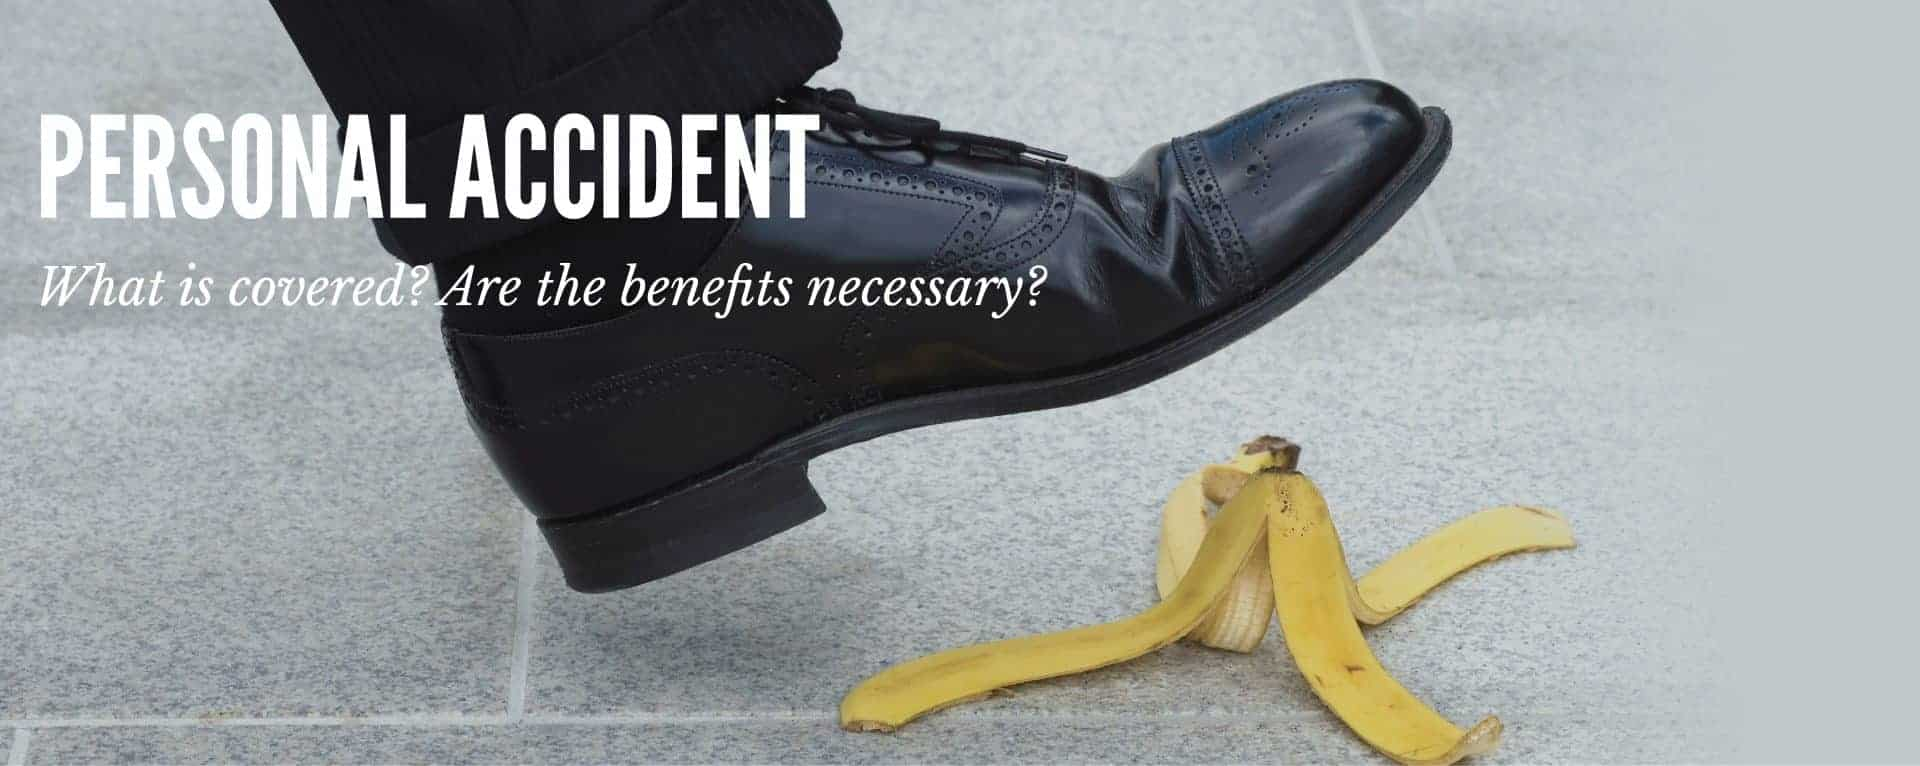 Personal Accident- What is covered? Is the benefits necessary?